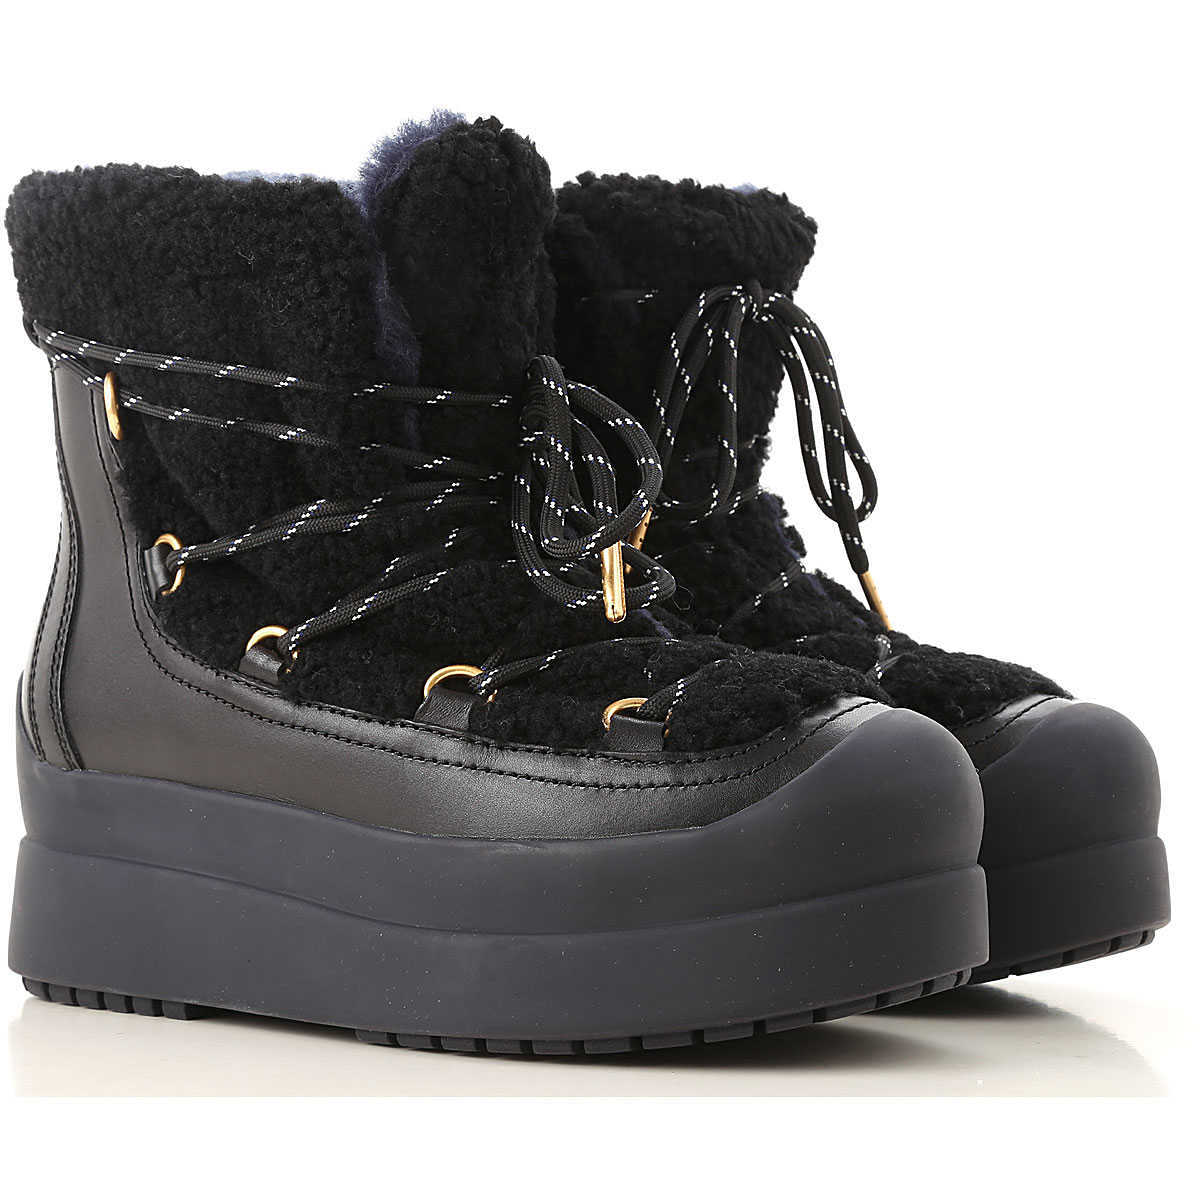 Tory Burch Boots for Women 3.5 4.5 5.5 6.5 Booties On Sale UK - GOOFASH